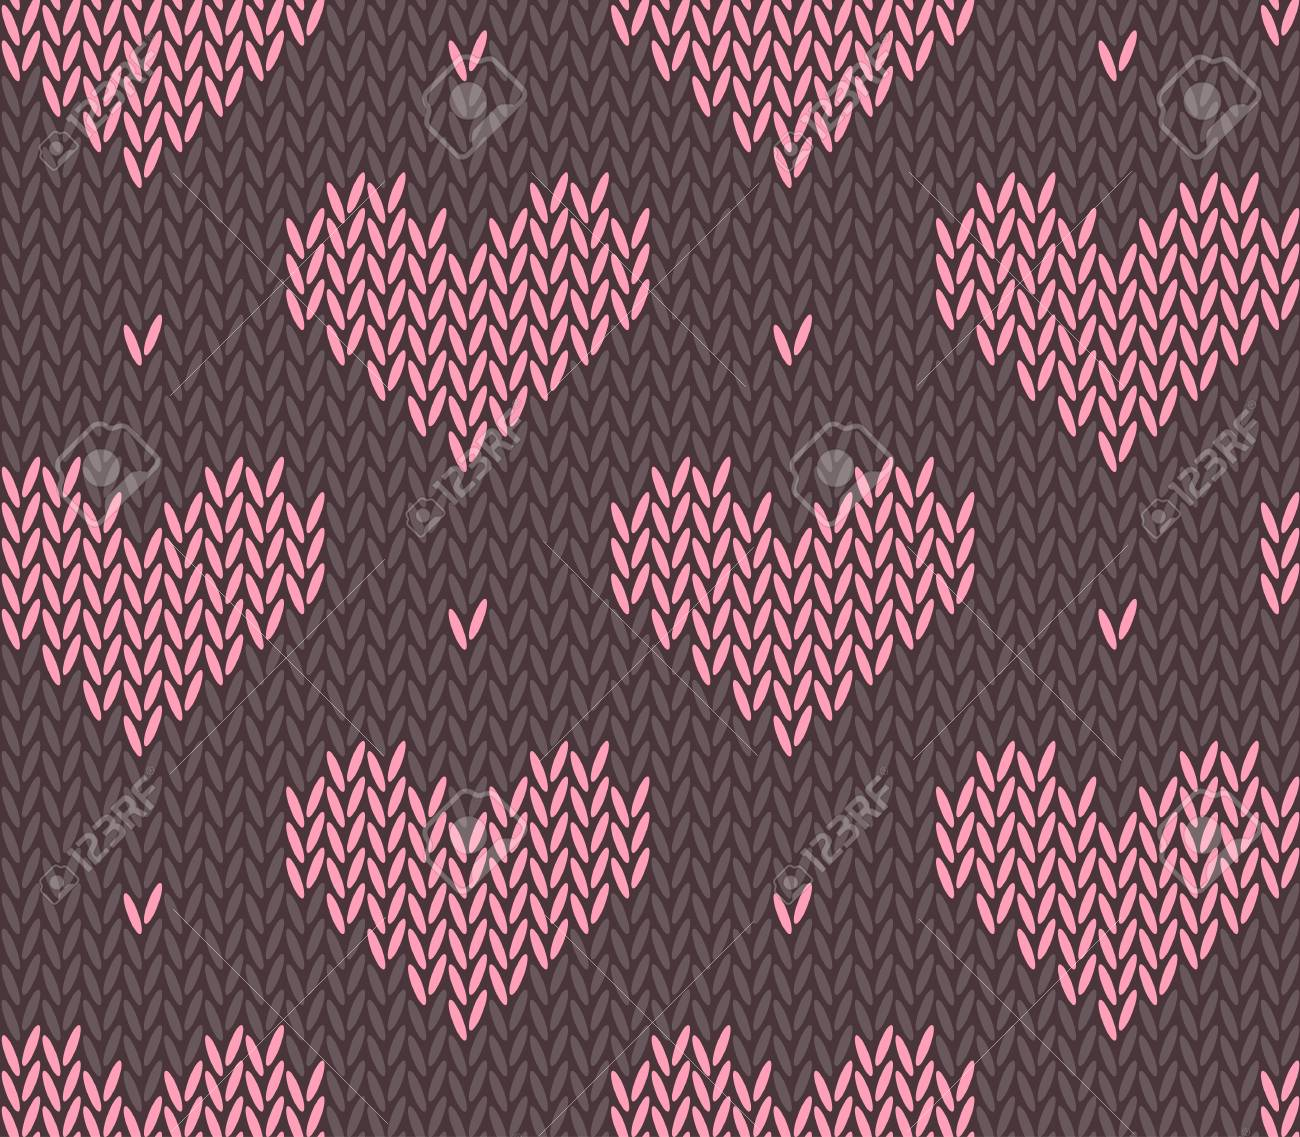 Saint Valentine\'s Day Seamless Knitting Pattern With Hearts Royalty ...